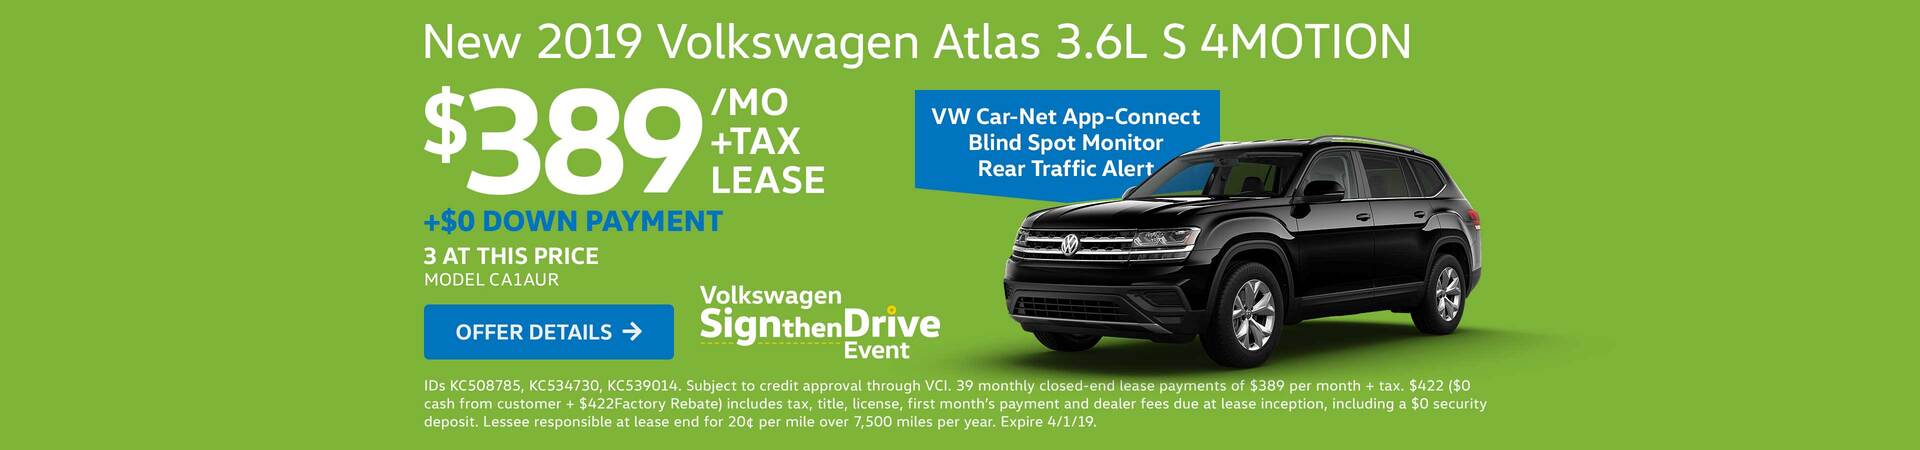 2019 Atlas 3.6L S 4MOTION Lease